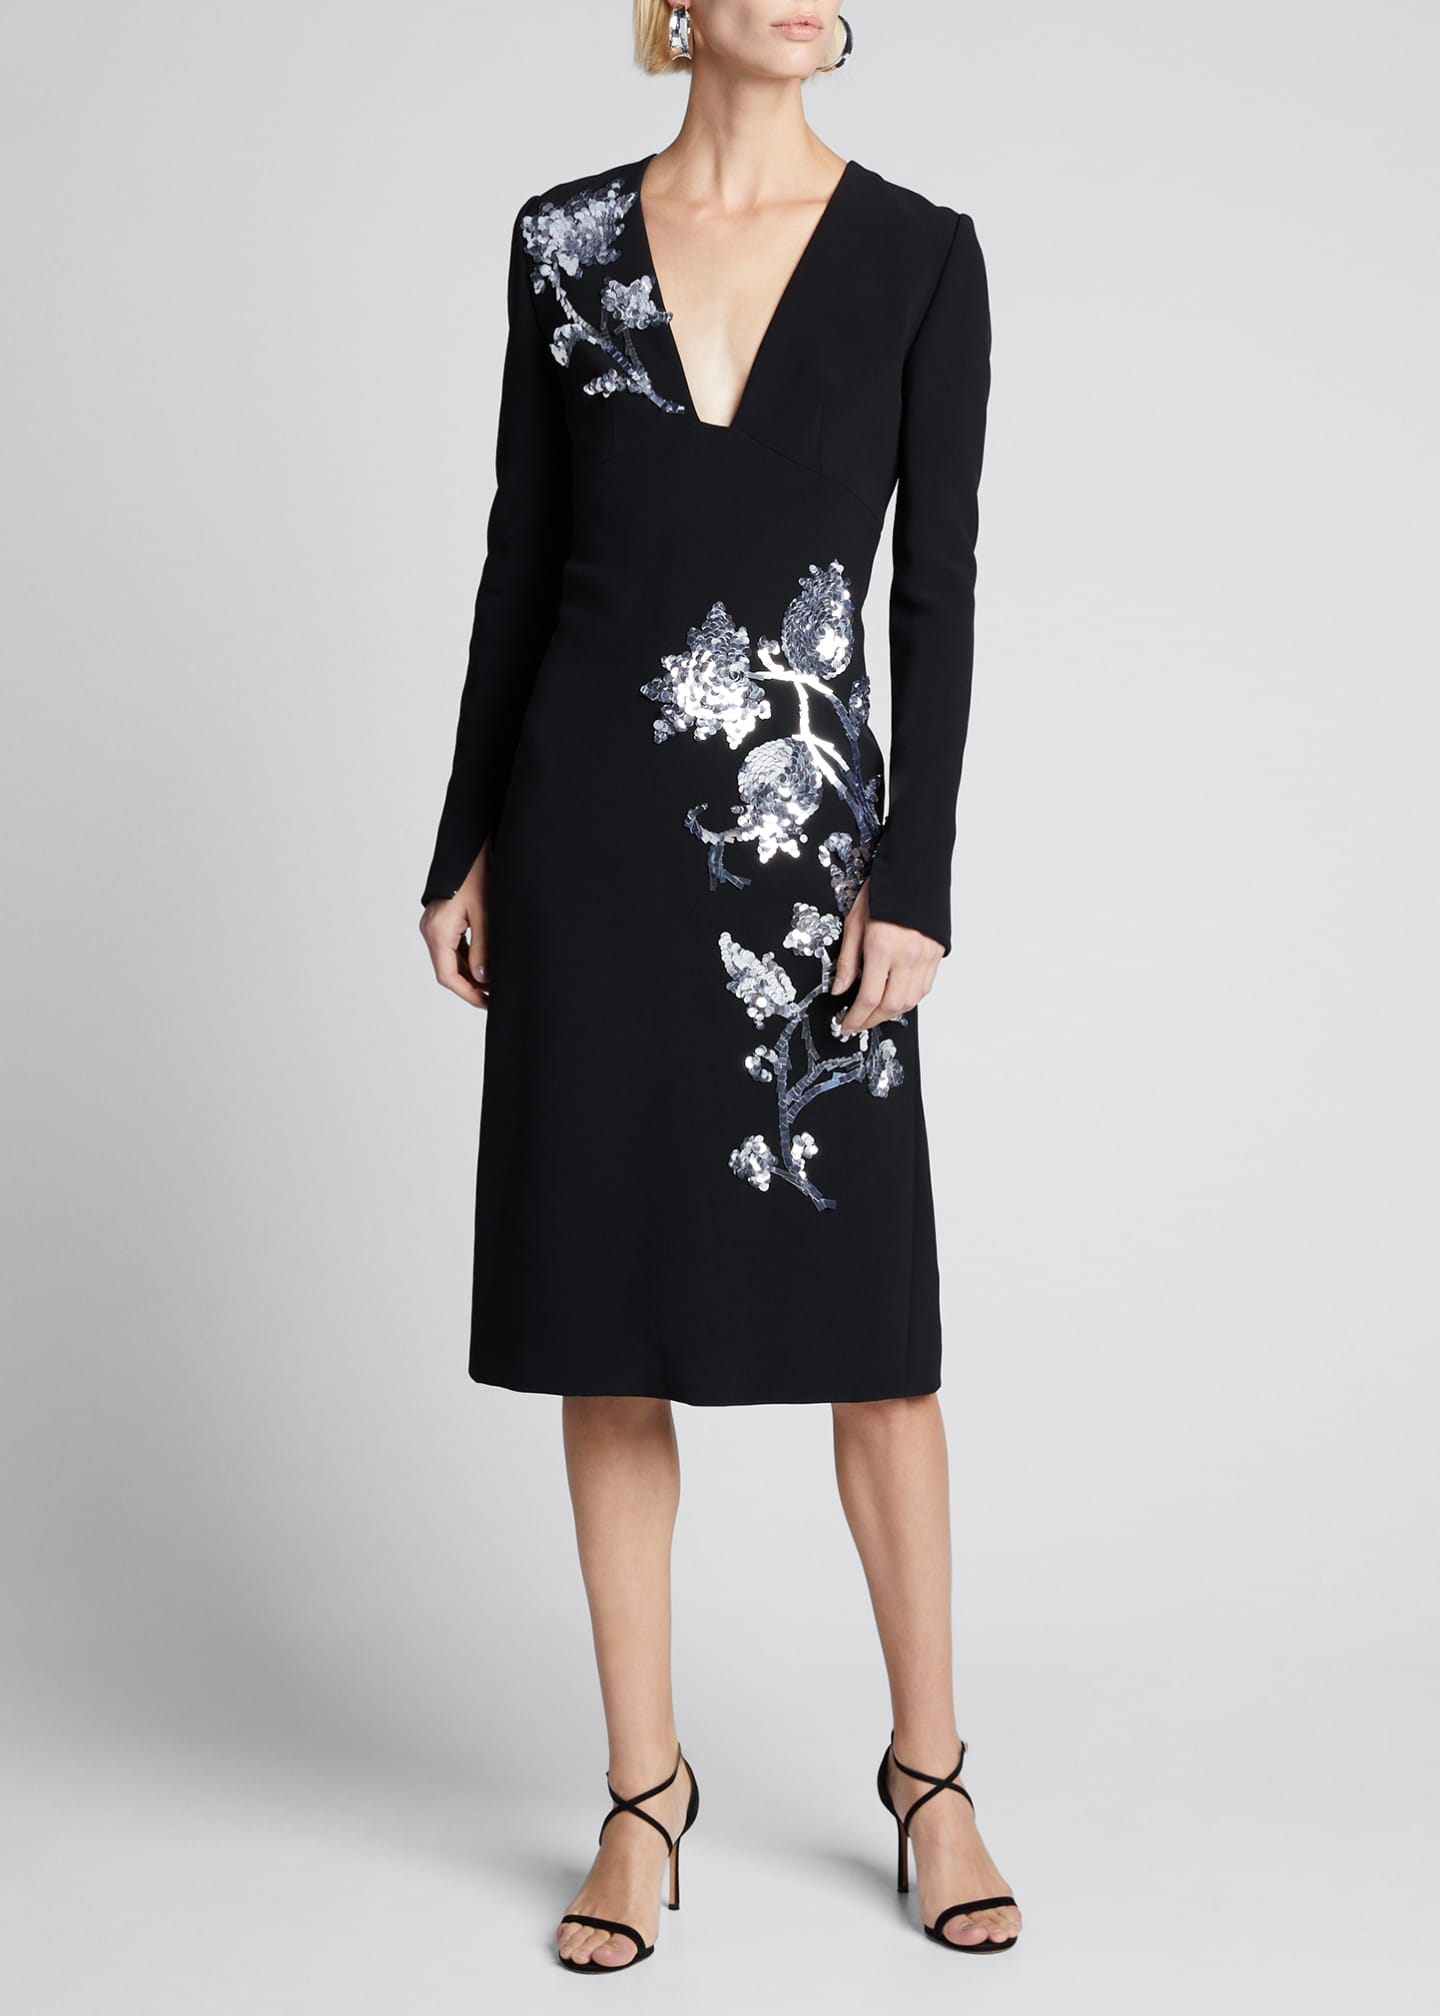 Carolina Herrera Sequin-Embroidered Deep-V Dress